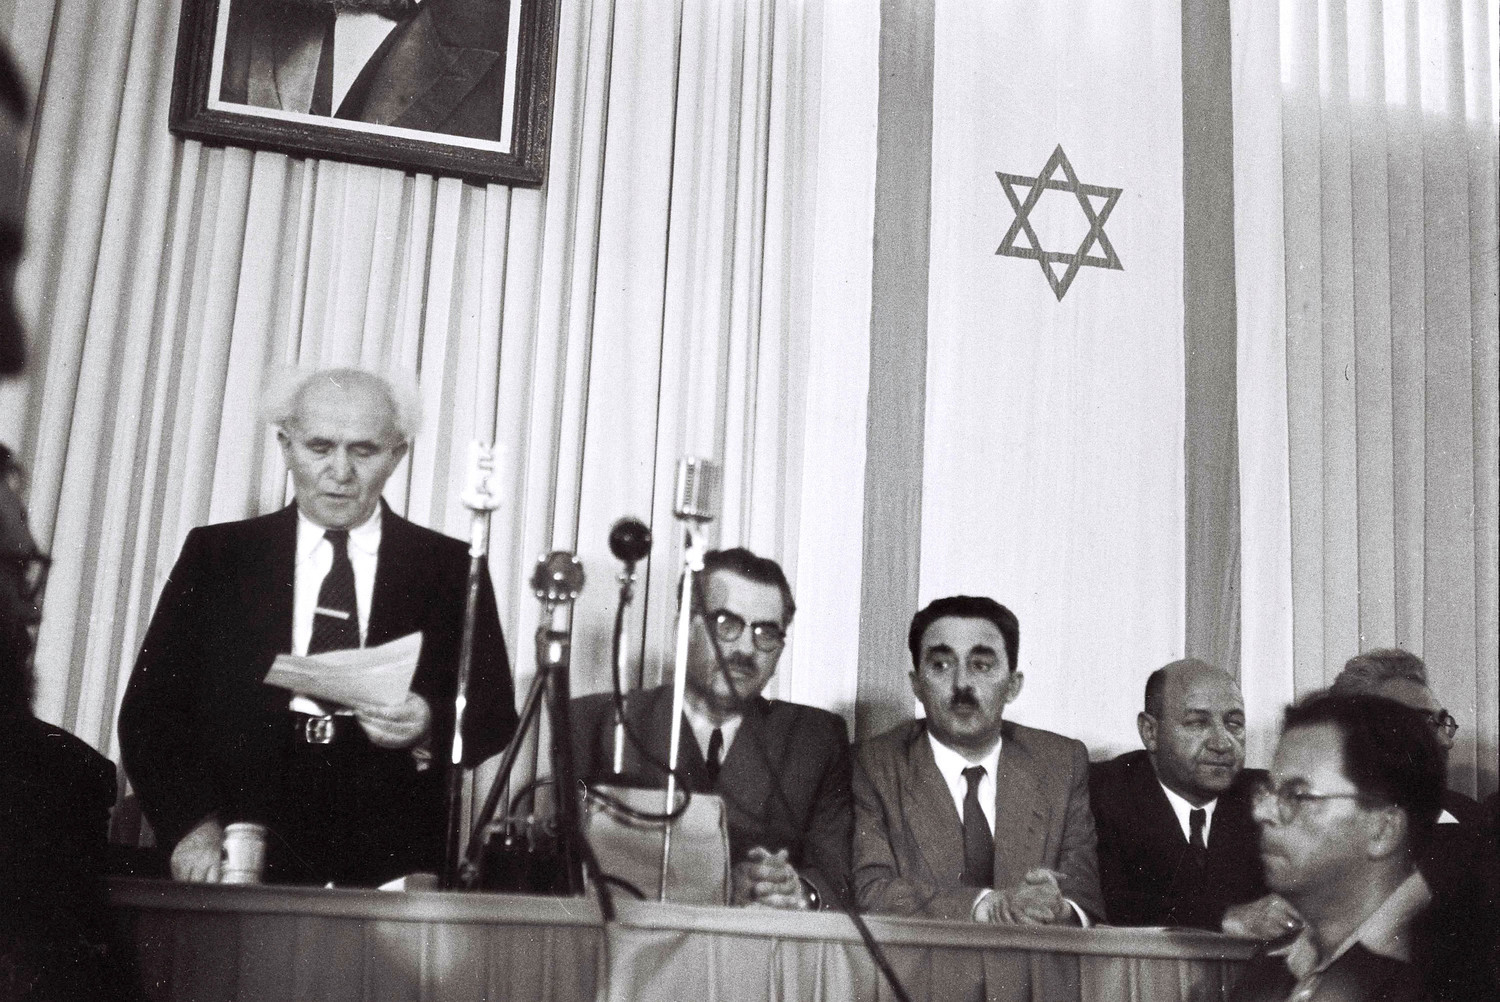 David Ben Gurion, who was to become Israel's first Prime Minister, reads the Declaration of Independence May 14, 1948 at the museum in Tel Aviv, during the ceremony founding the State of Israel.